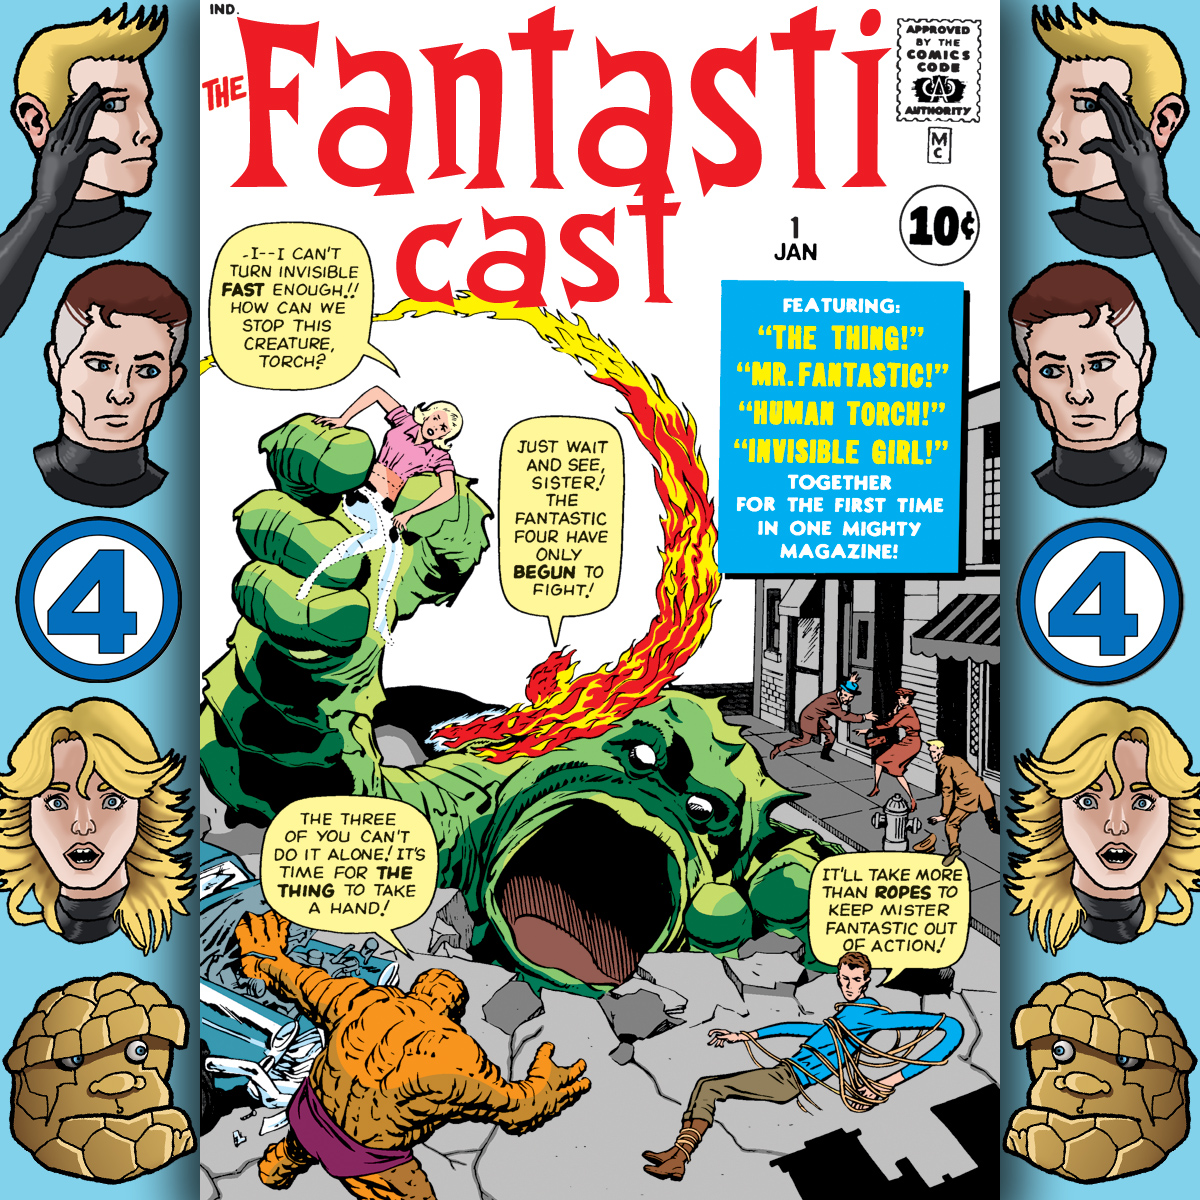 The Fantasticast Episode 1: Special Edition